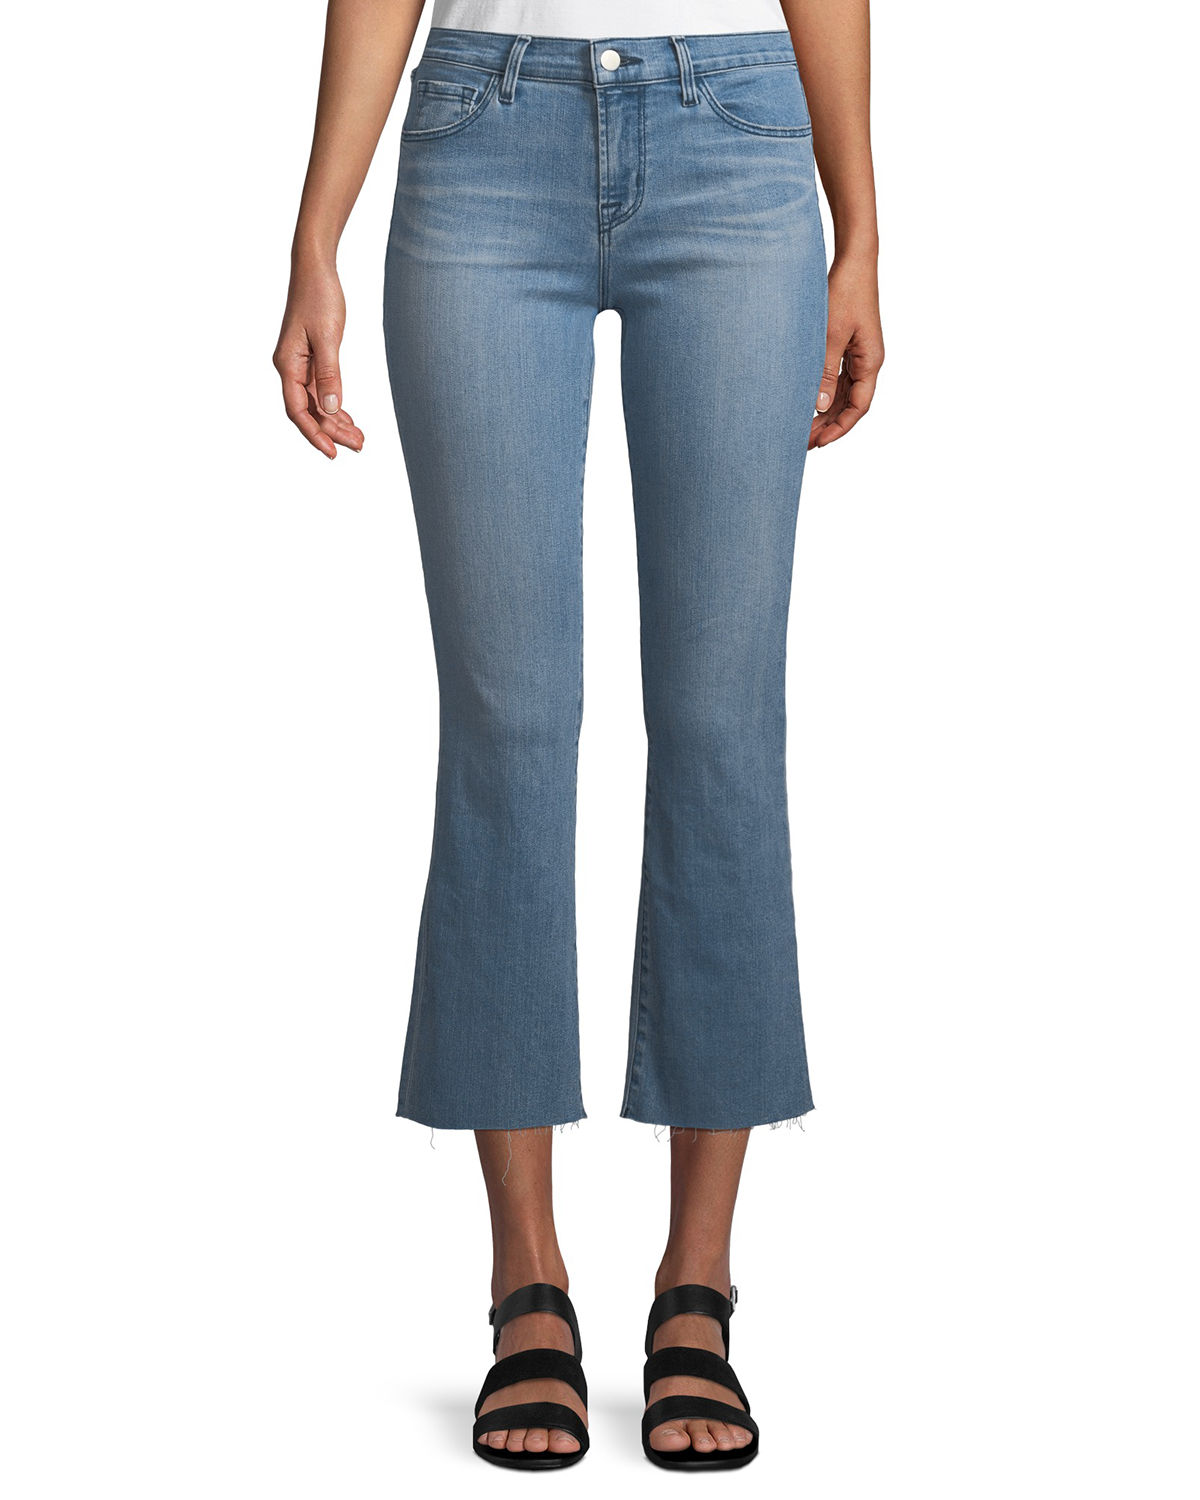 J Brand Jeans SELENA MID-RISE CROP BOOT JEANS